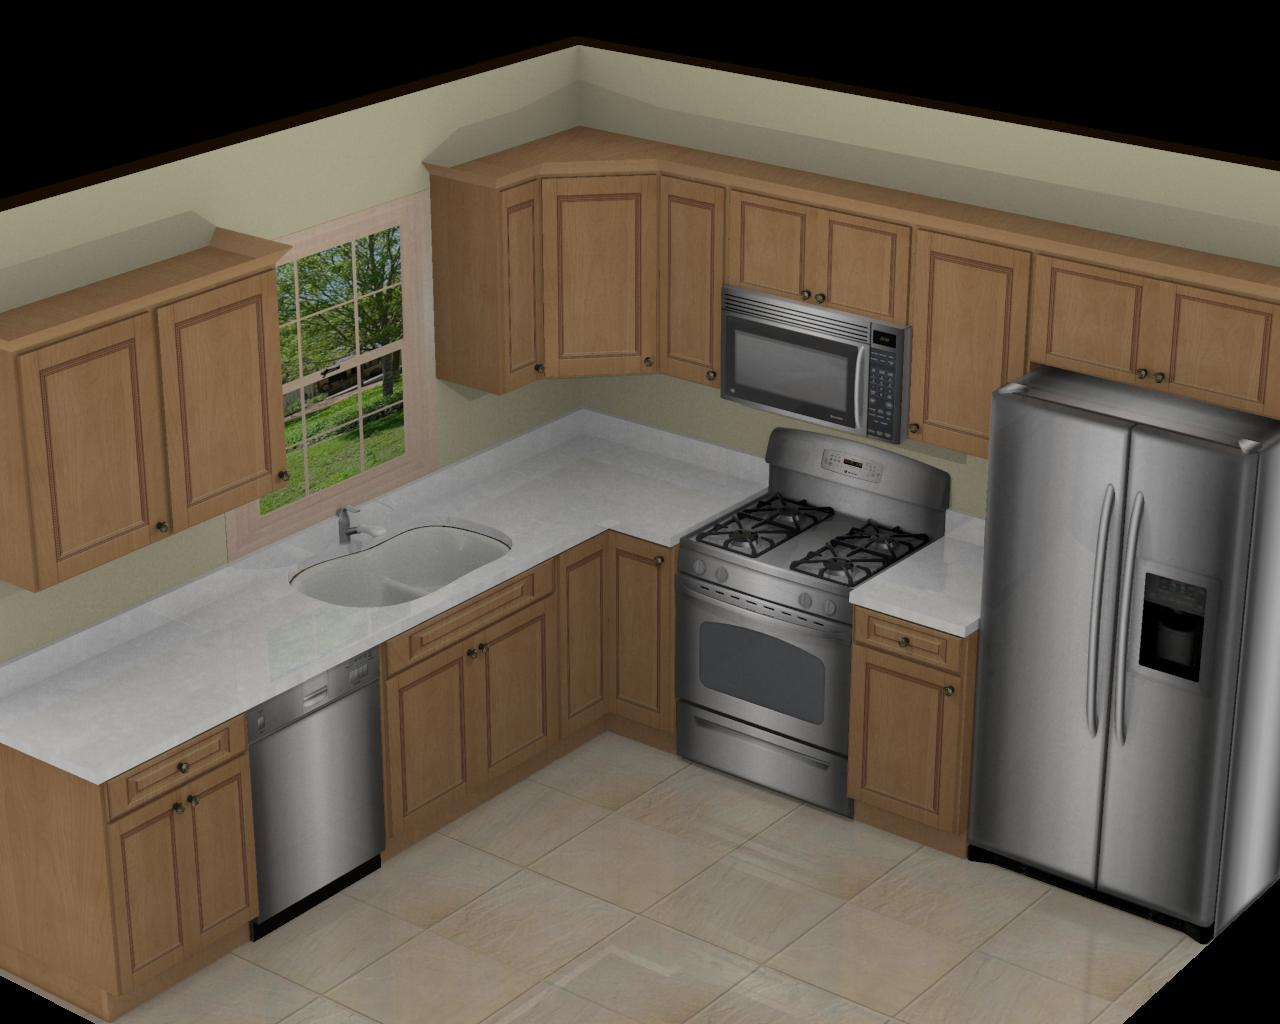 Foundation dezin decor 3d kitchen model design for Kitchen design planner